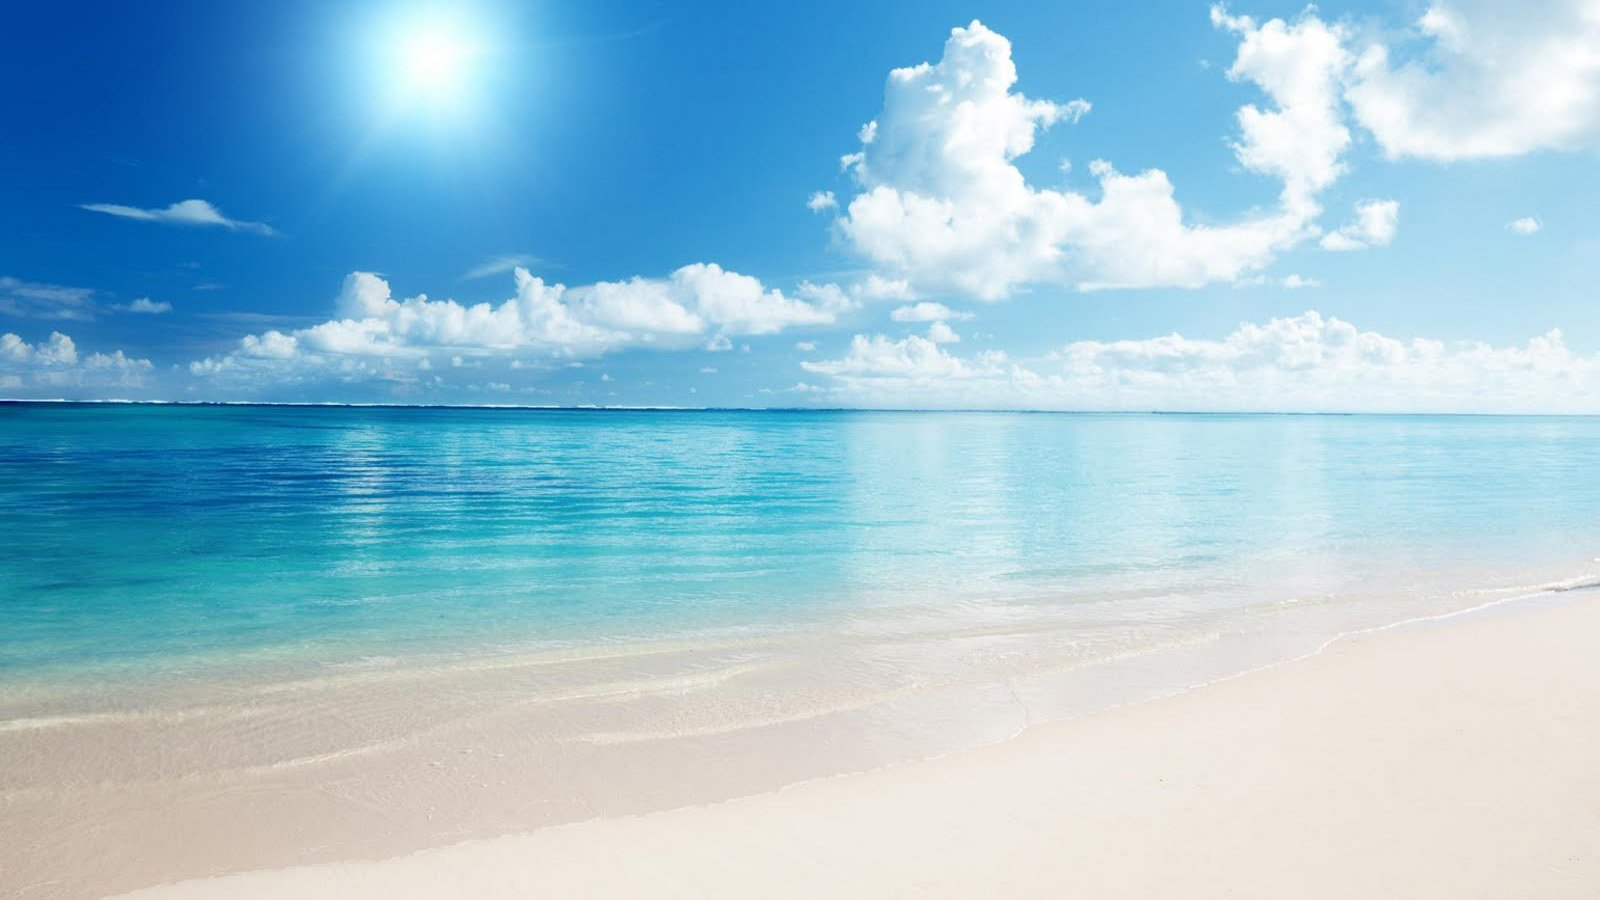 share beach wallpaper wallpaper gallery to the pinterest facebook 1600x900